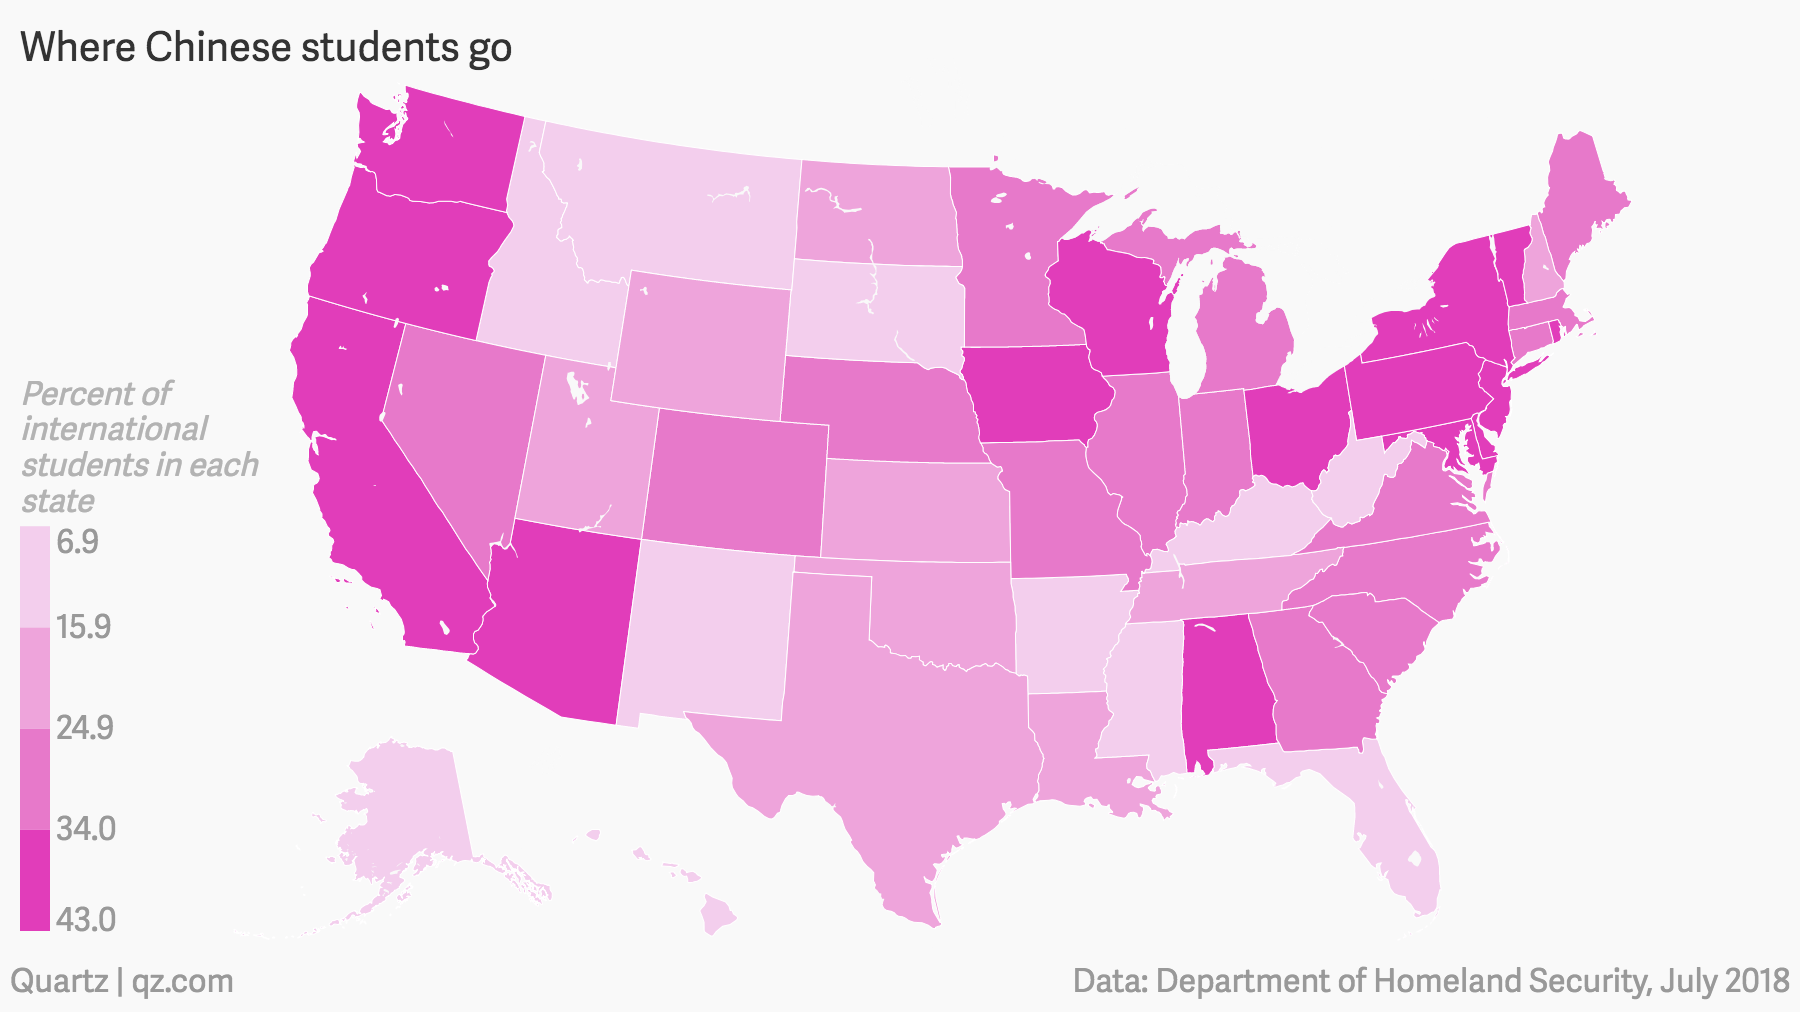 Where Chinese students go in the US